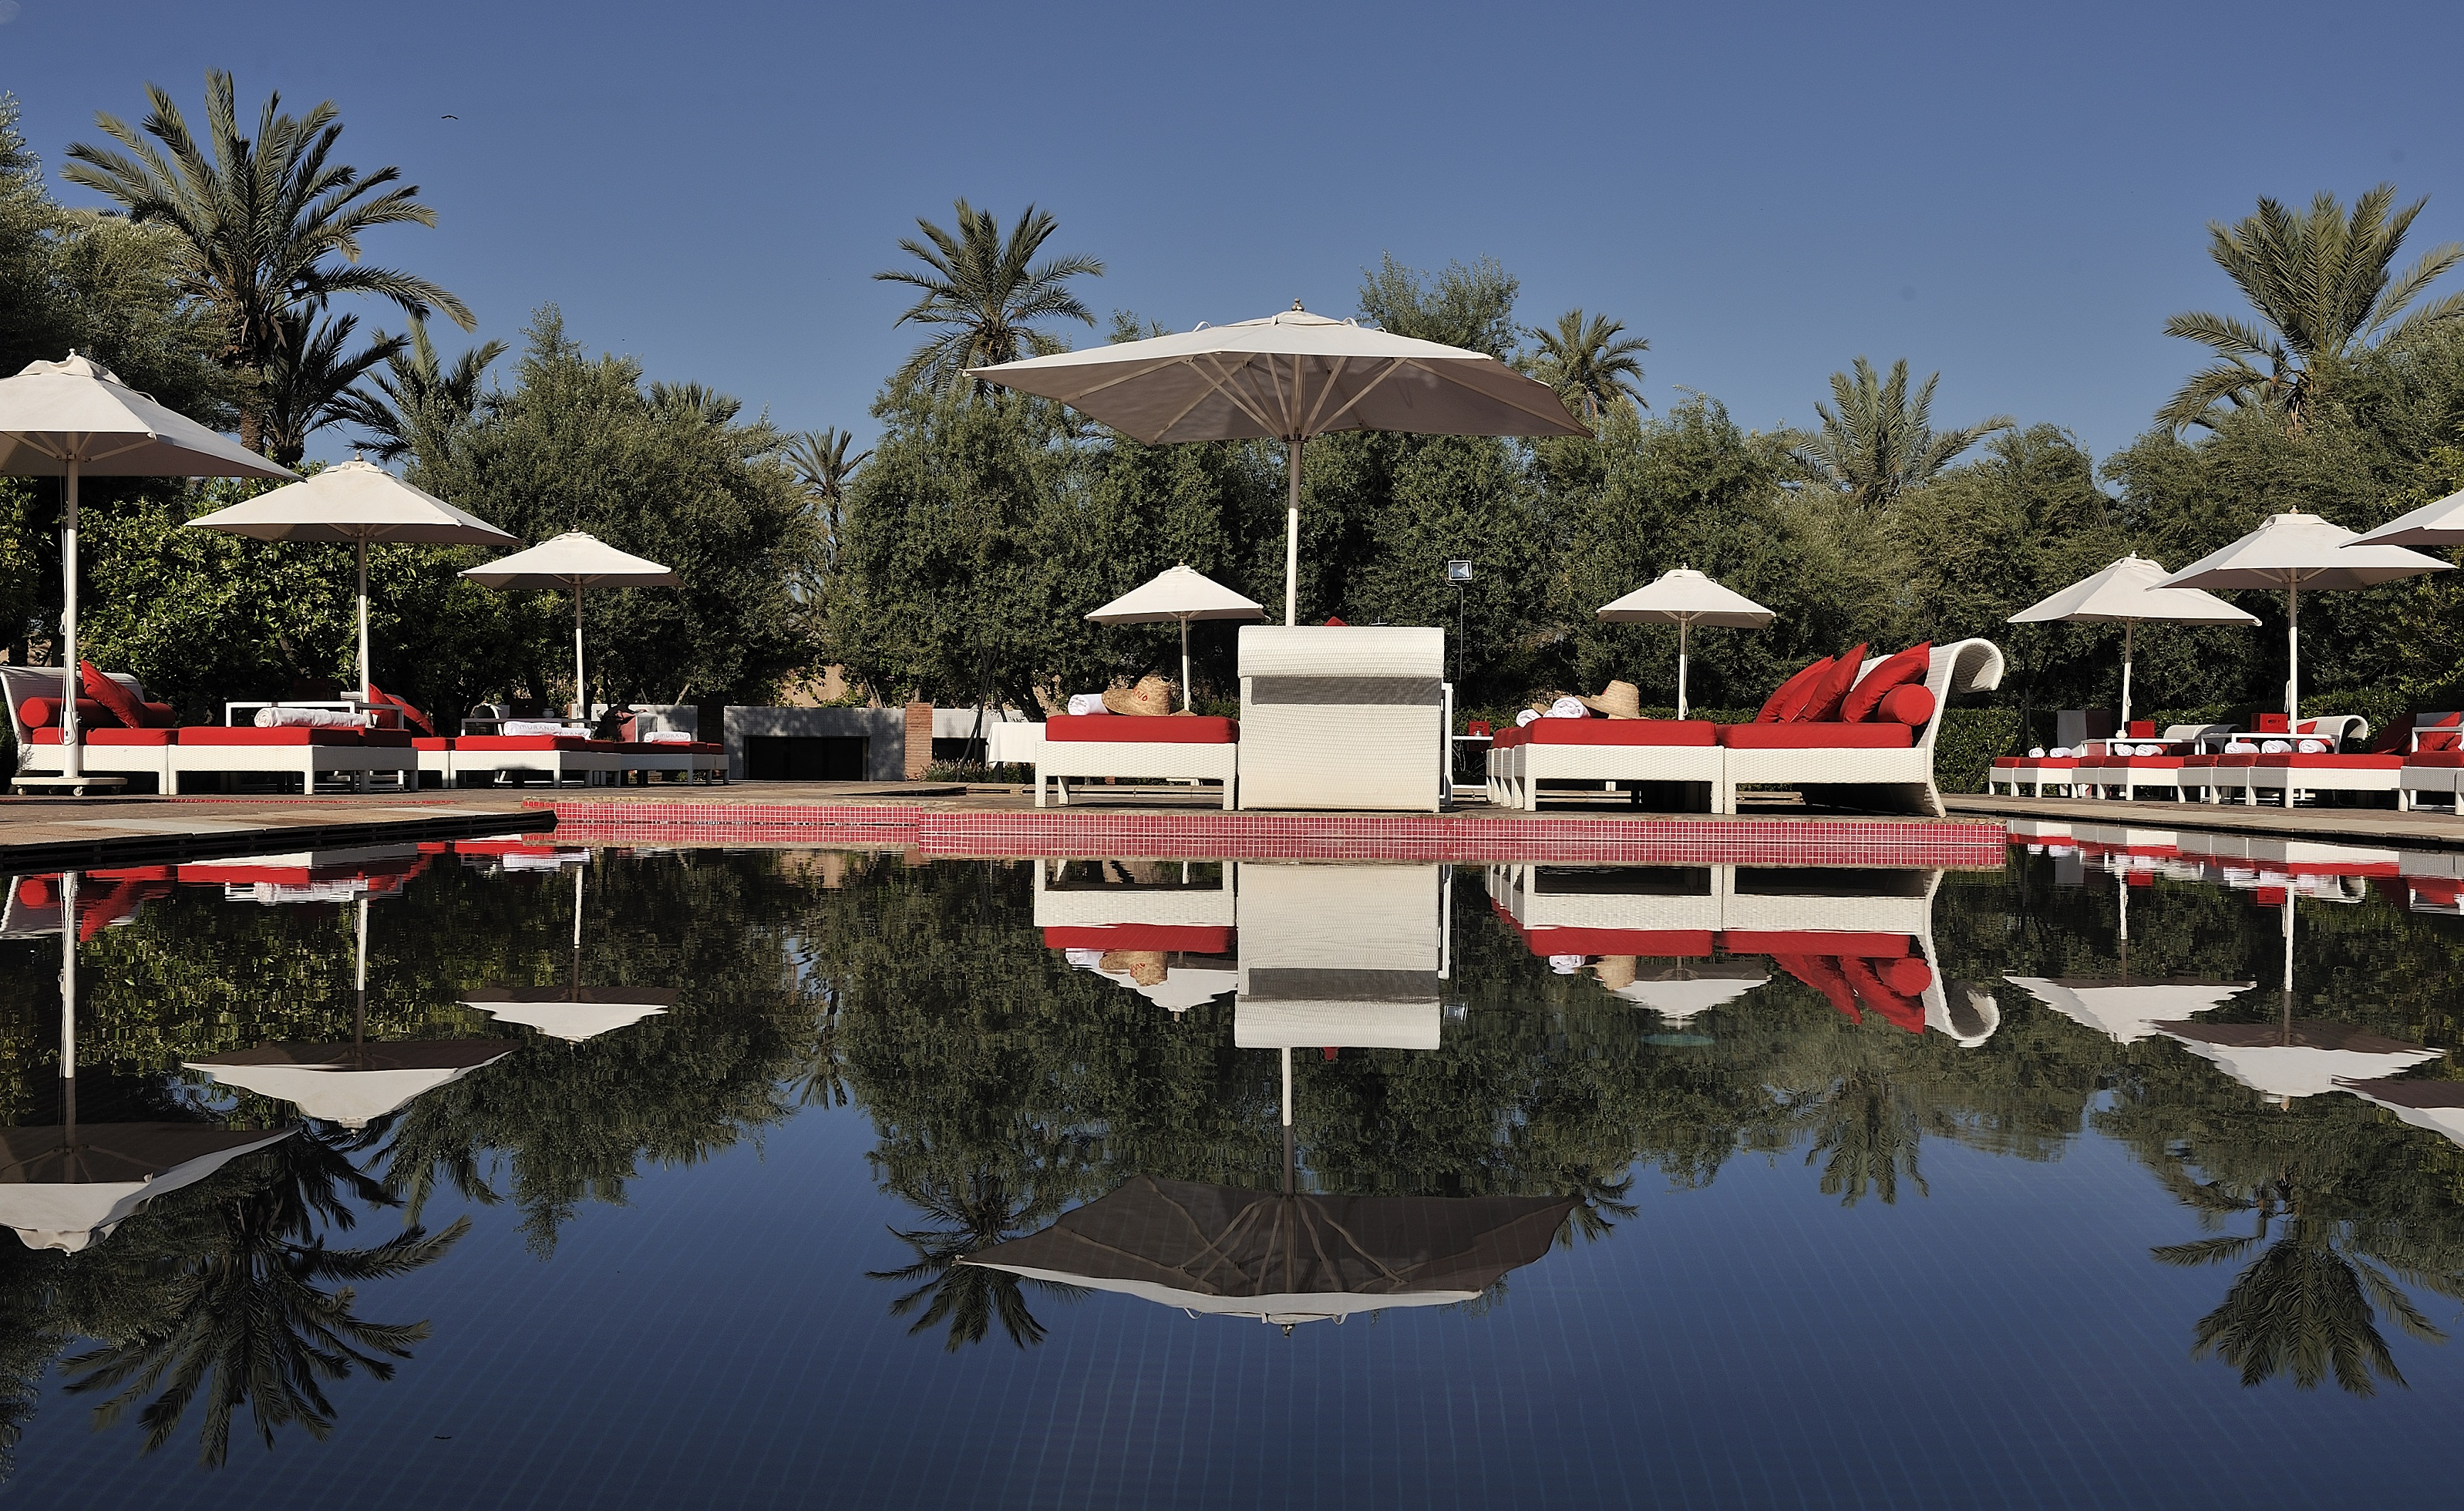 39/EXTERIEUR/Resort-Piscine-Marrakech 4 1.jpg